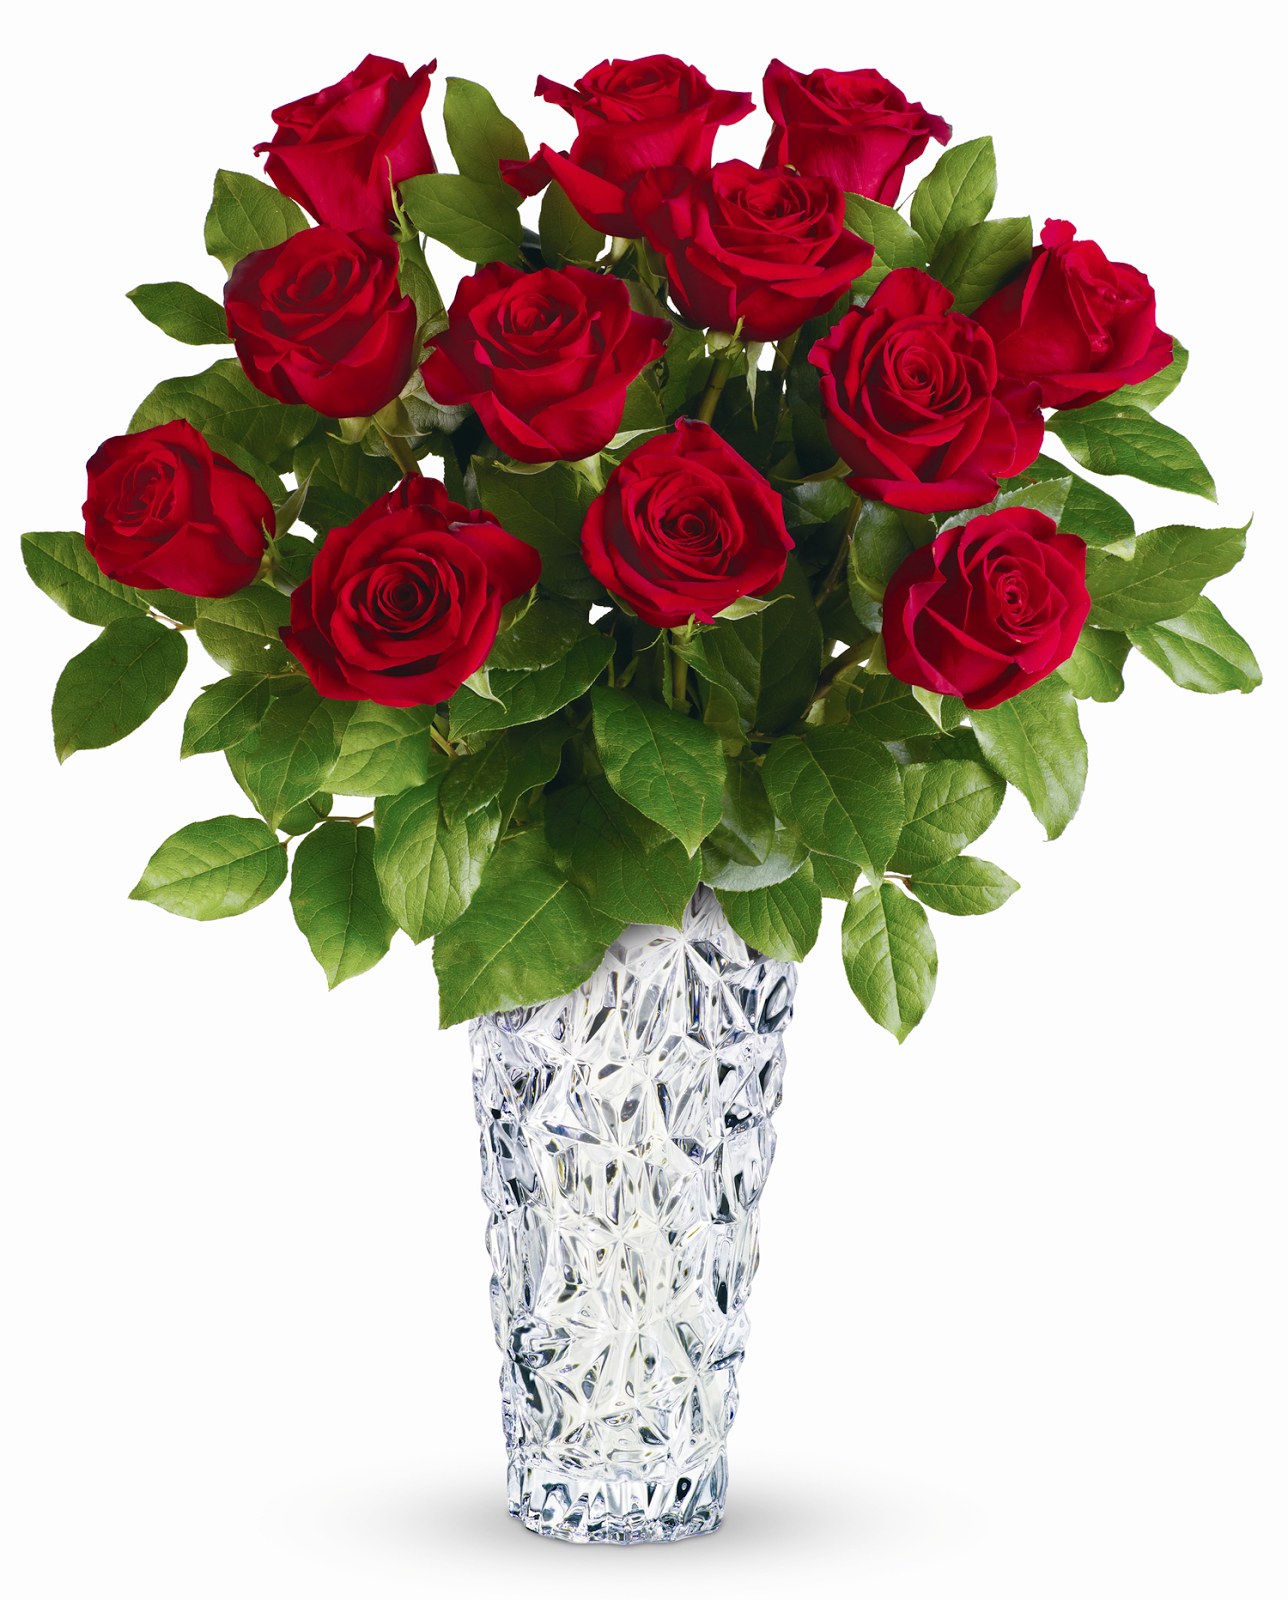 Impress Your Leading Lady With This Exquisite Arrangement Of Lush Long Stem Red Roses Displayed In A Magnificent Sculpted Glass Vase